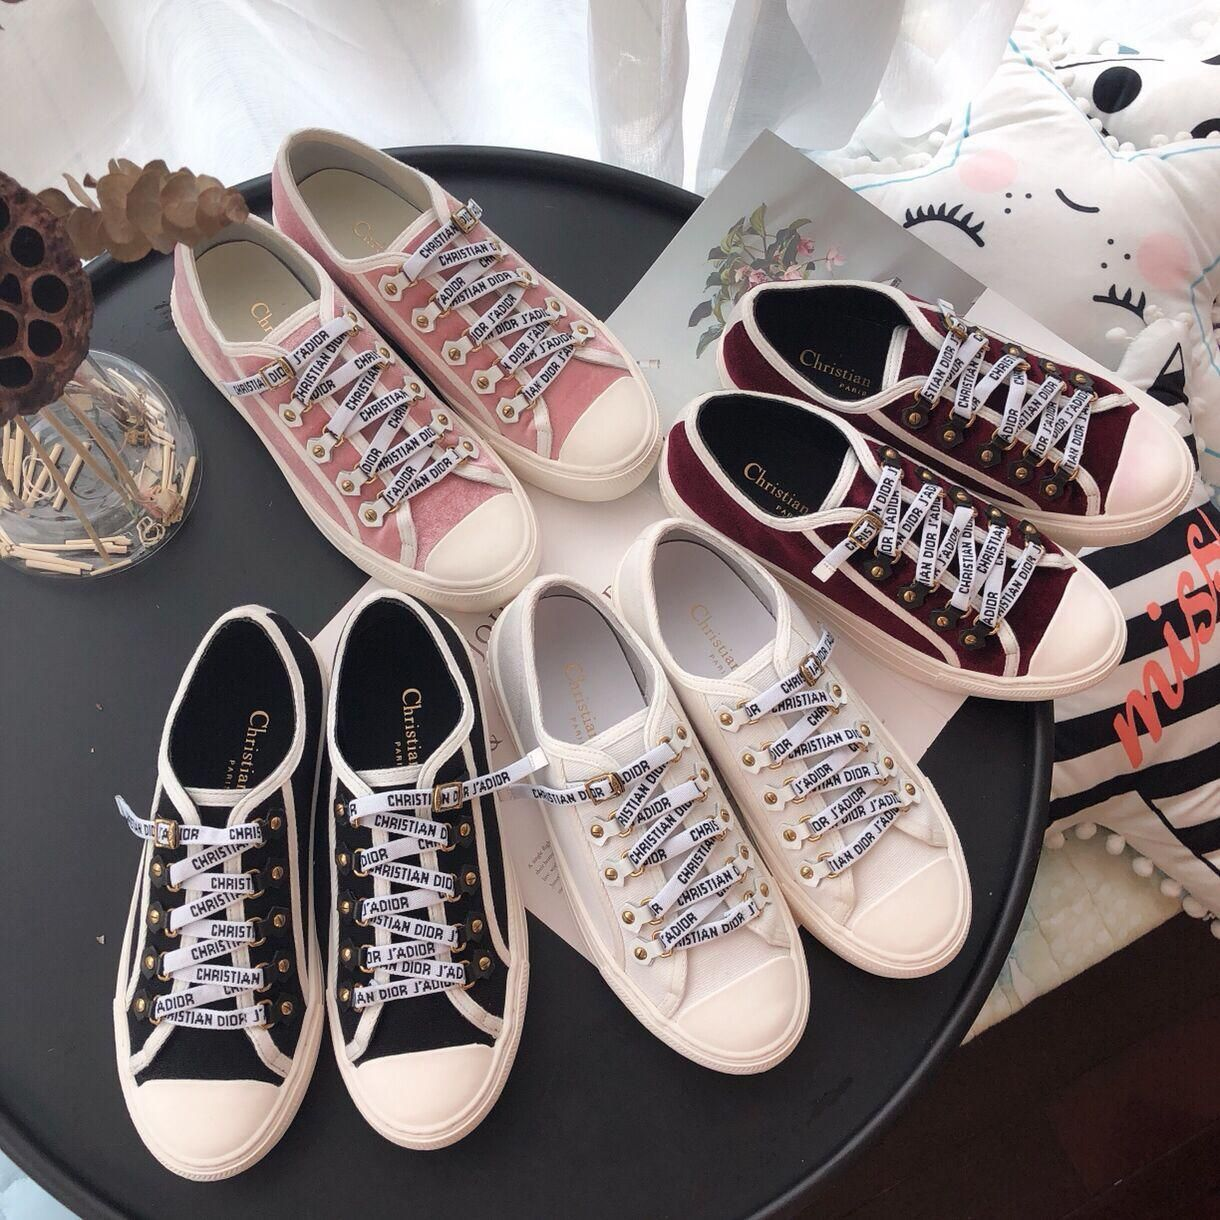 e8c4f4080d1b DIOR WALK N DIOR VELVET TRAINER   LOW-TOP CANVAS TRAINER from Love Vip  Fashion. Saved to shoes shoes shoes👠👡.